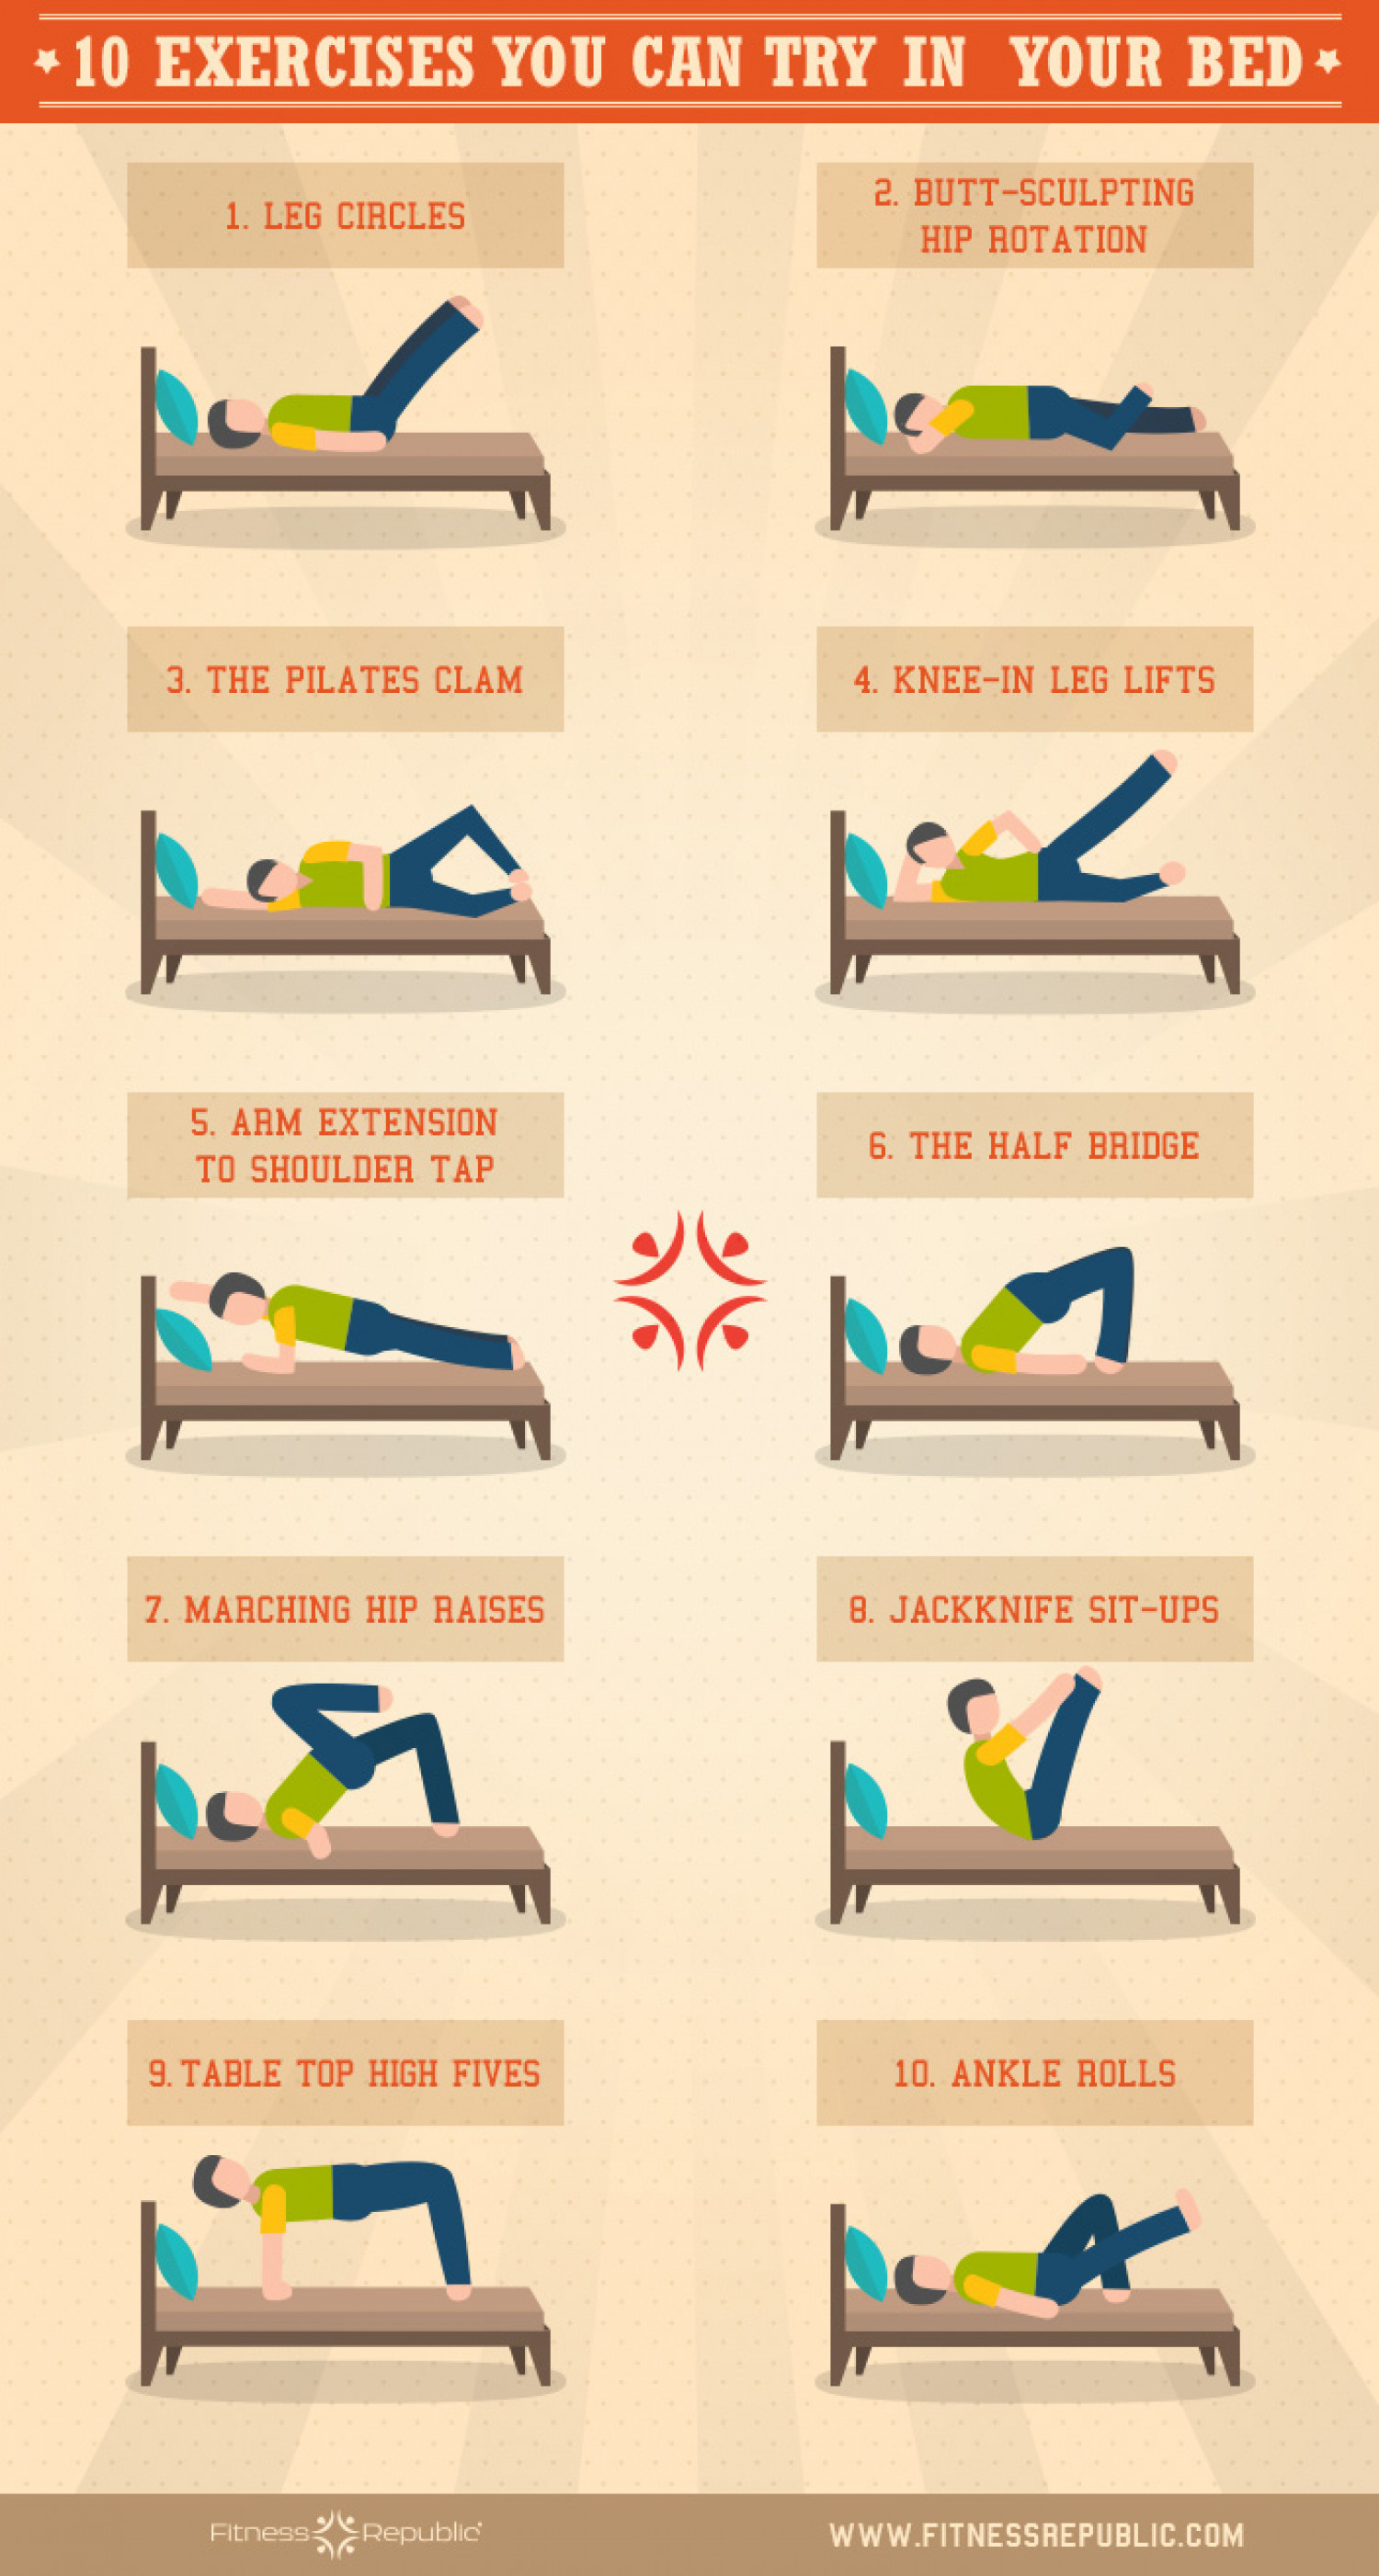 10 exercises you can try in your bed visual ly